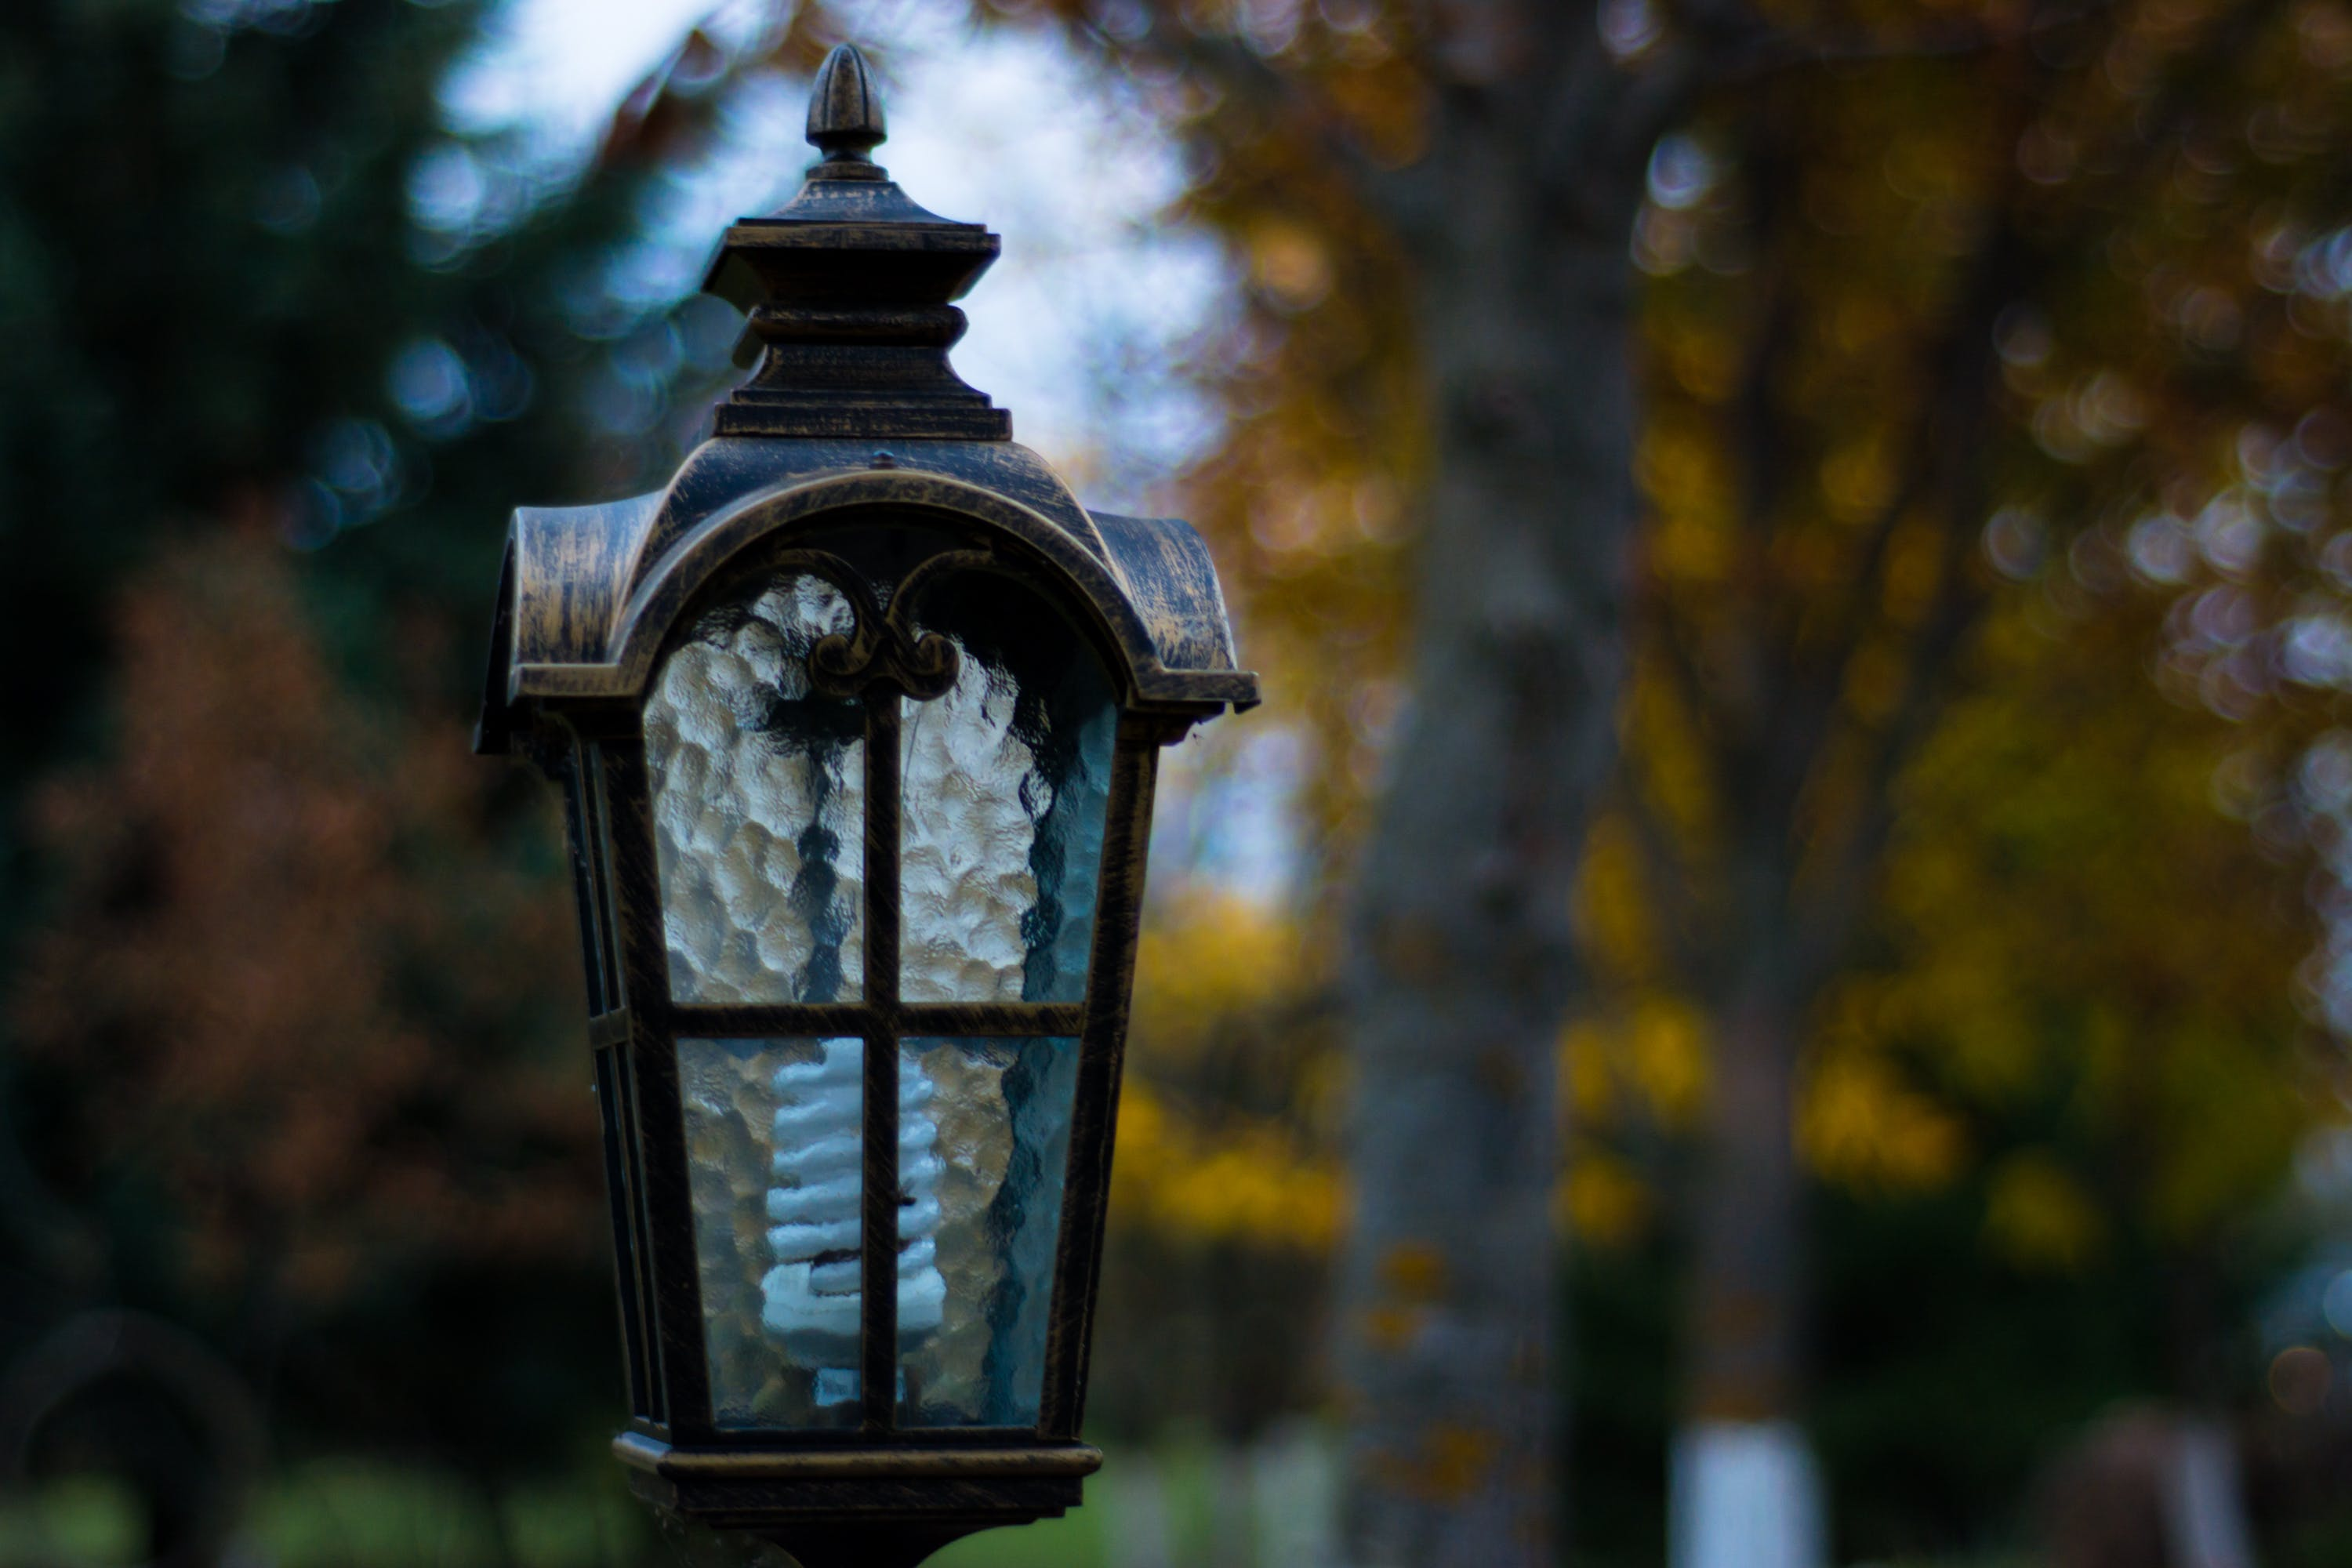 Free stock photo of city park, evening, lamp, lamppost